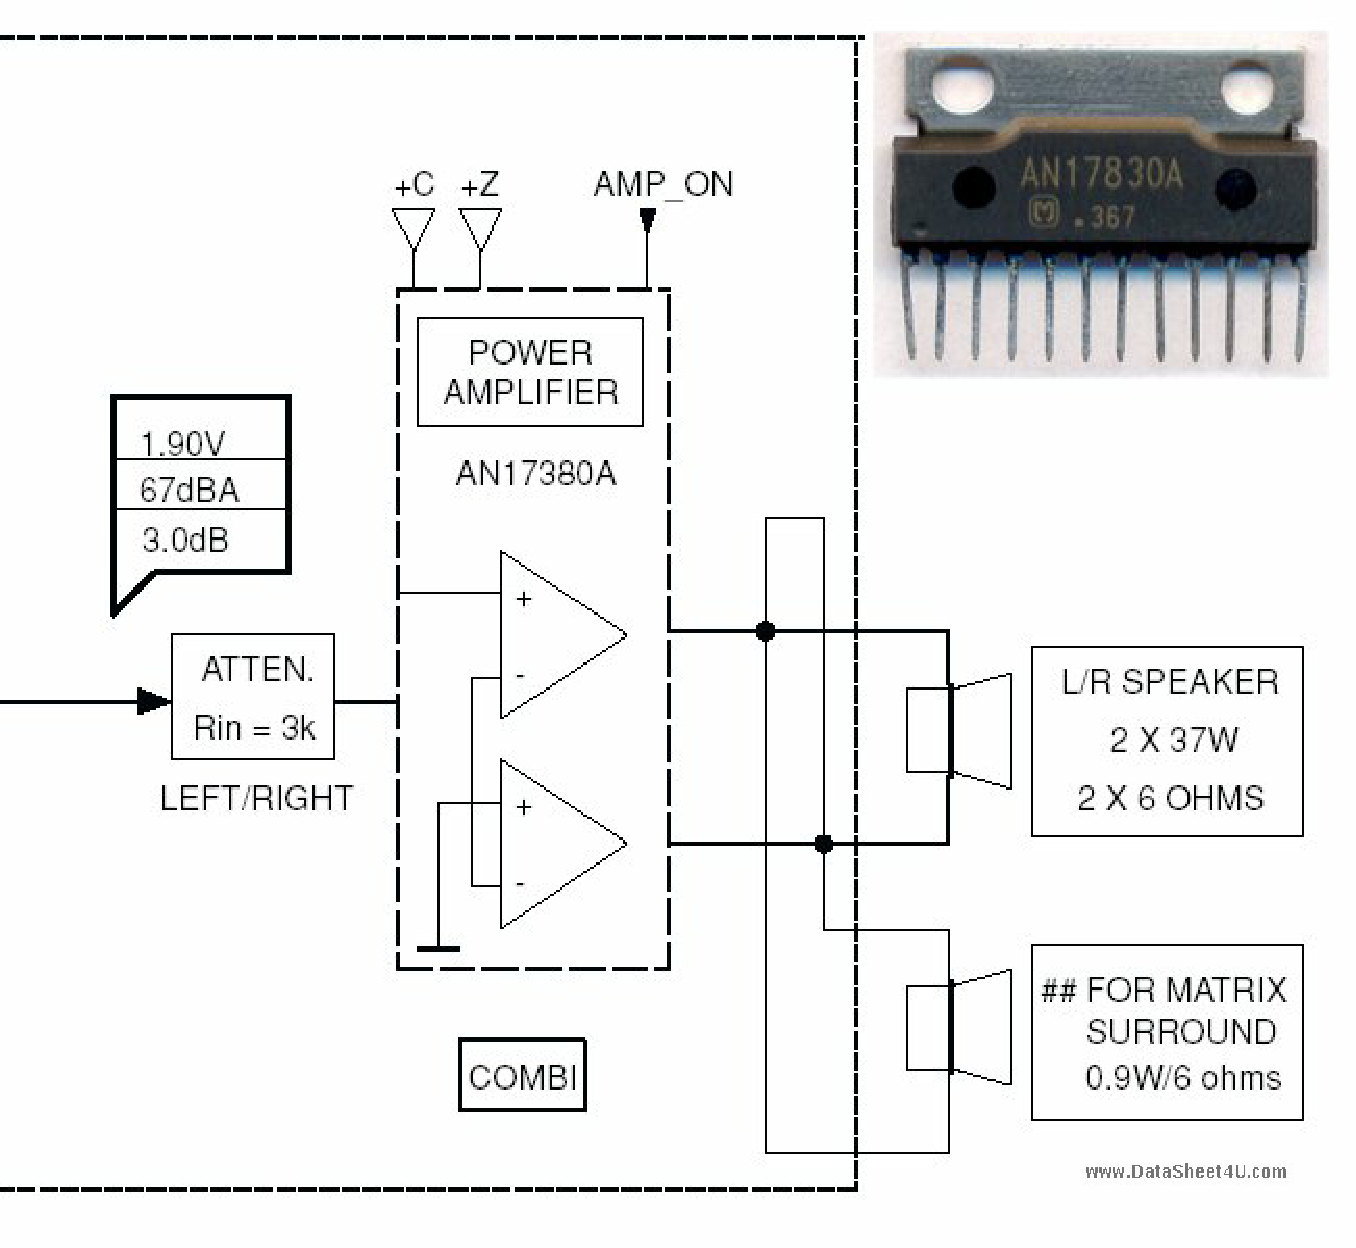 an17830a datasheet pdf   pinout    bridge audio power amplifier ic